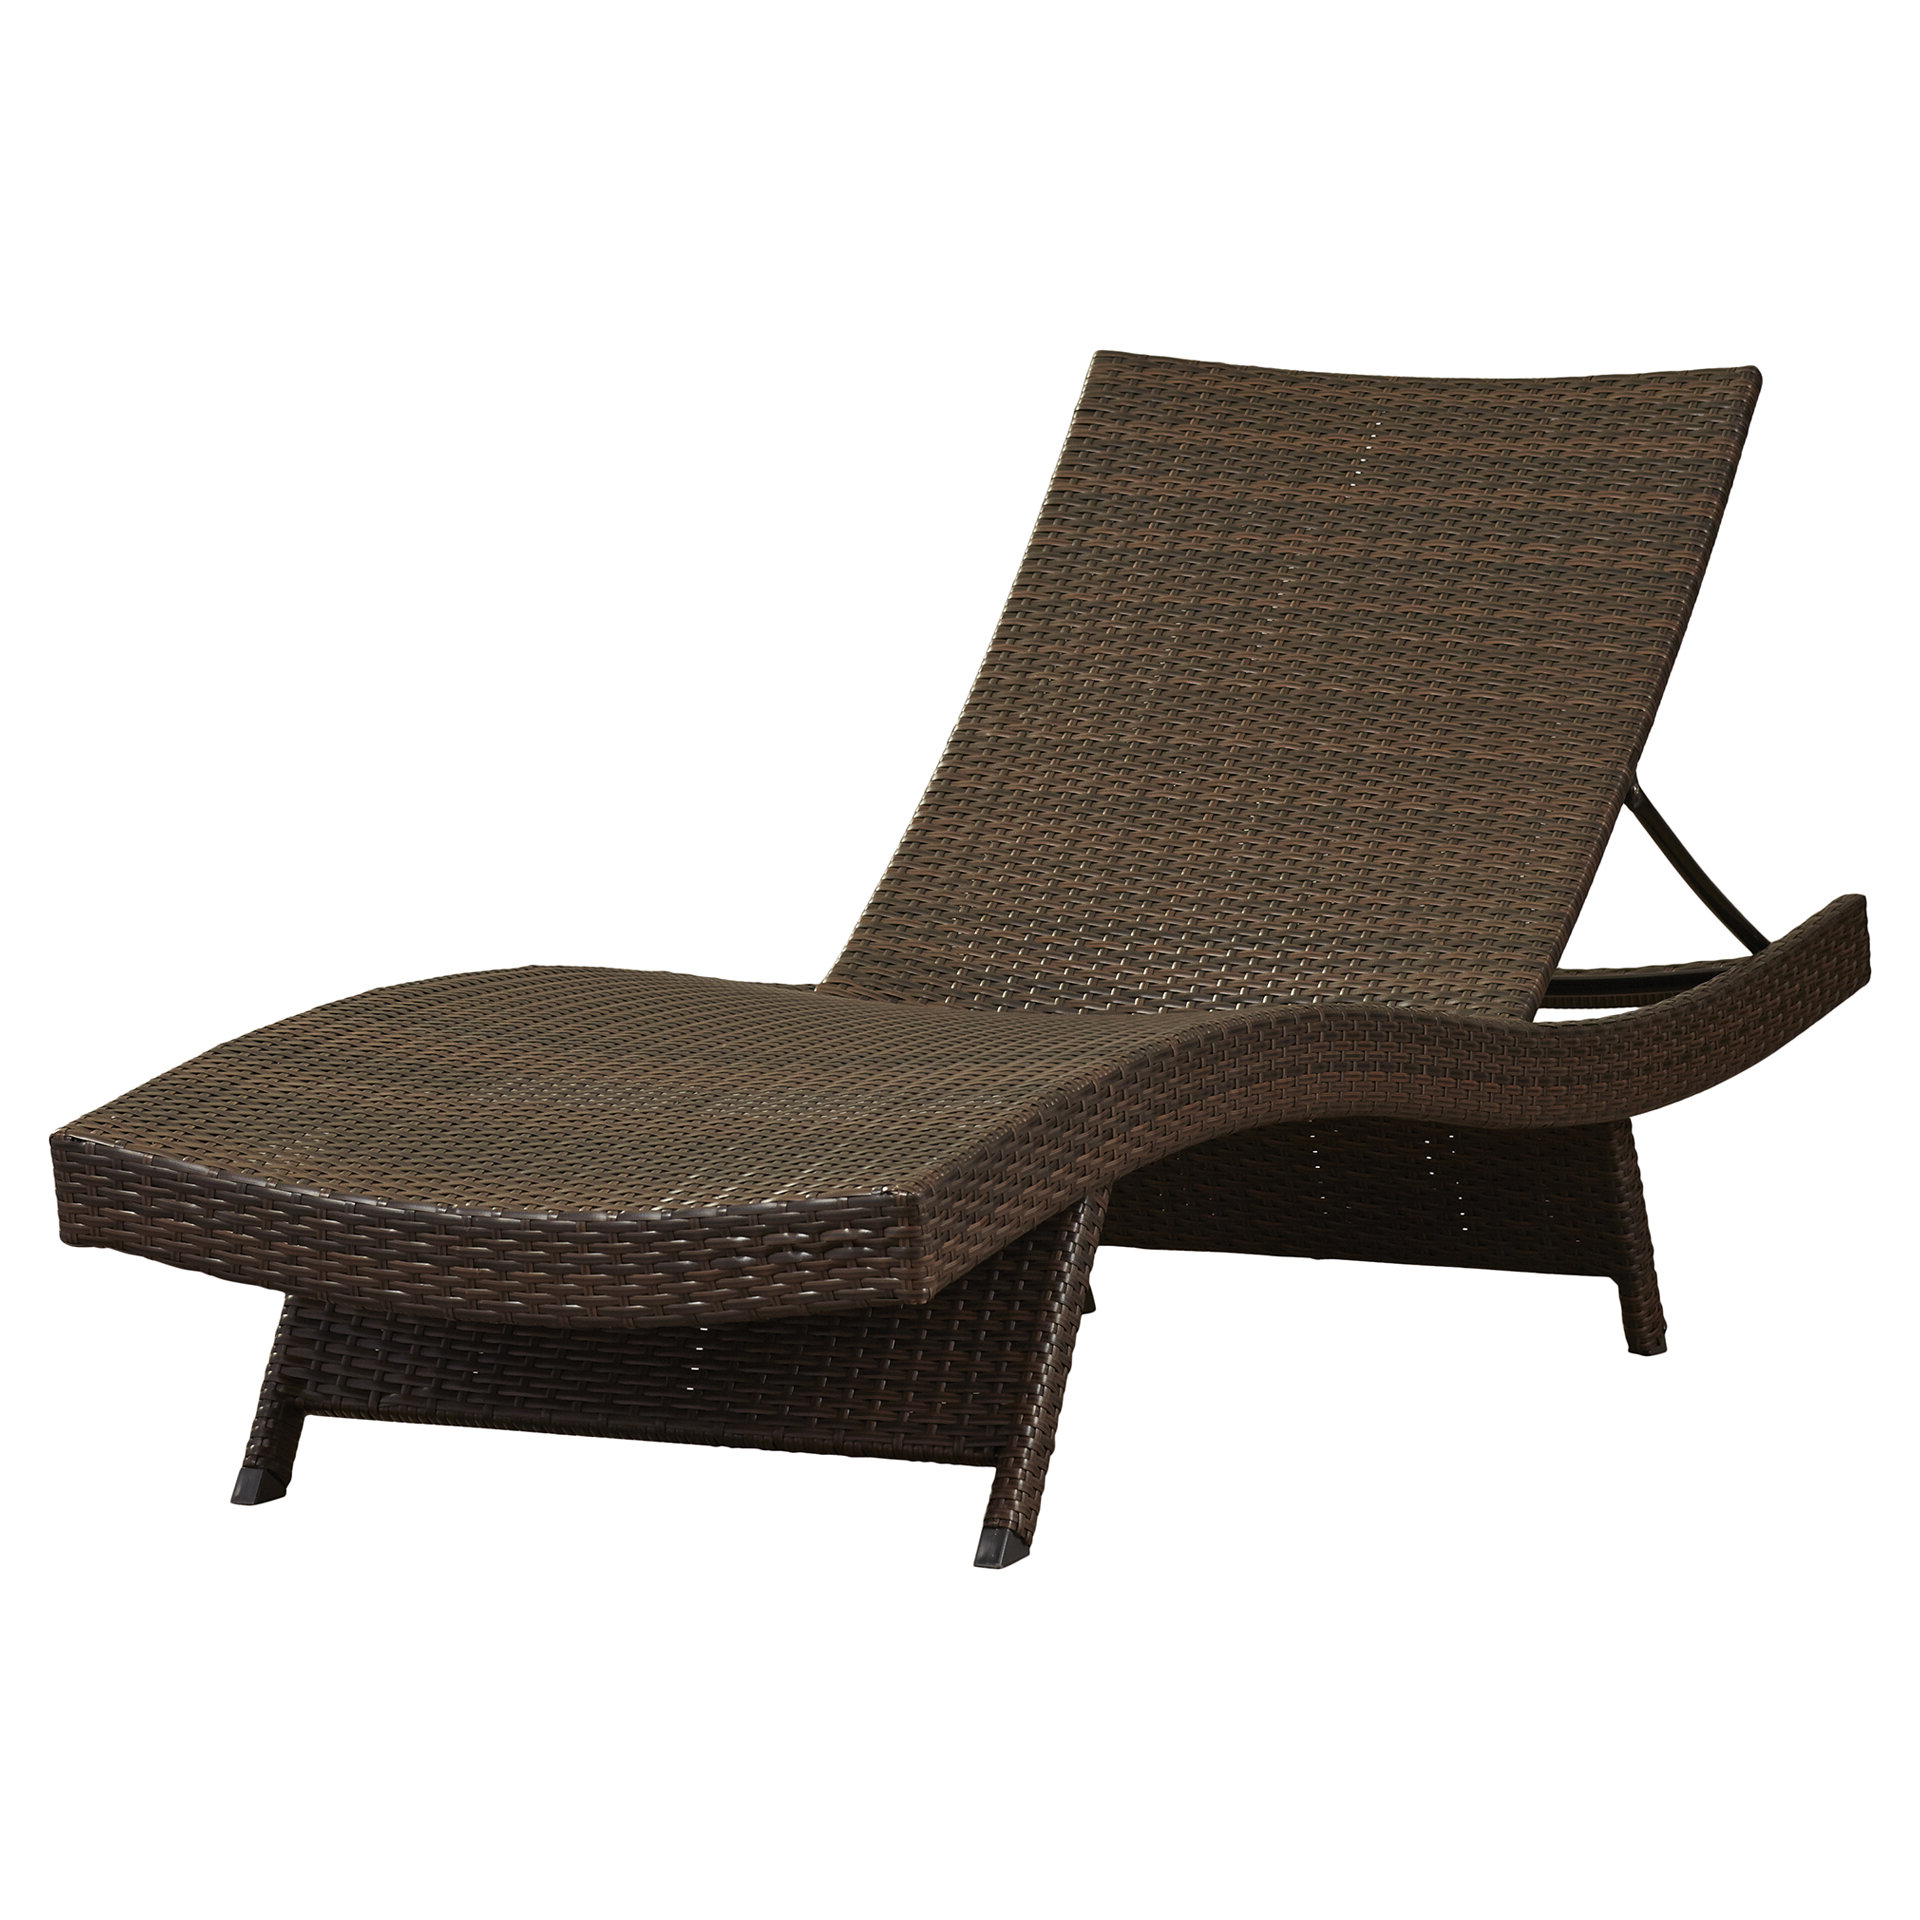 Brown Folding Patio Chaise Lounger Chairs Regarding 2019 Rebello Reclining Chaise Lounge (View 6 of 25)